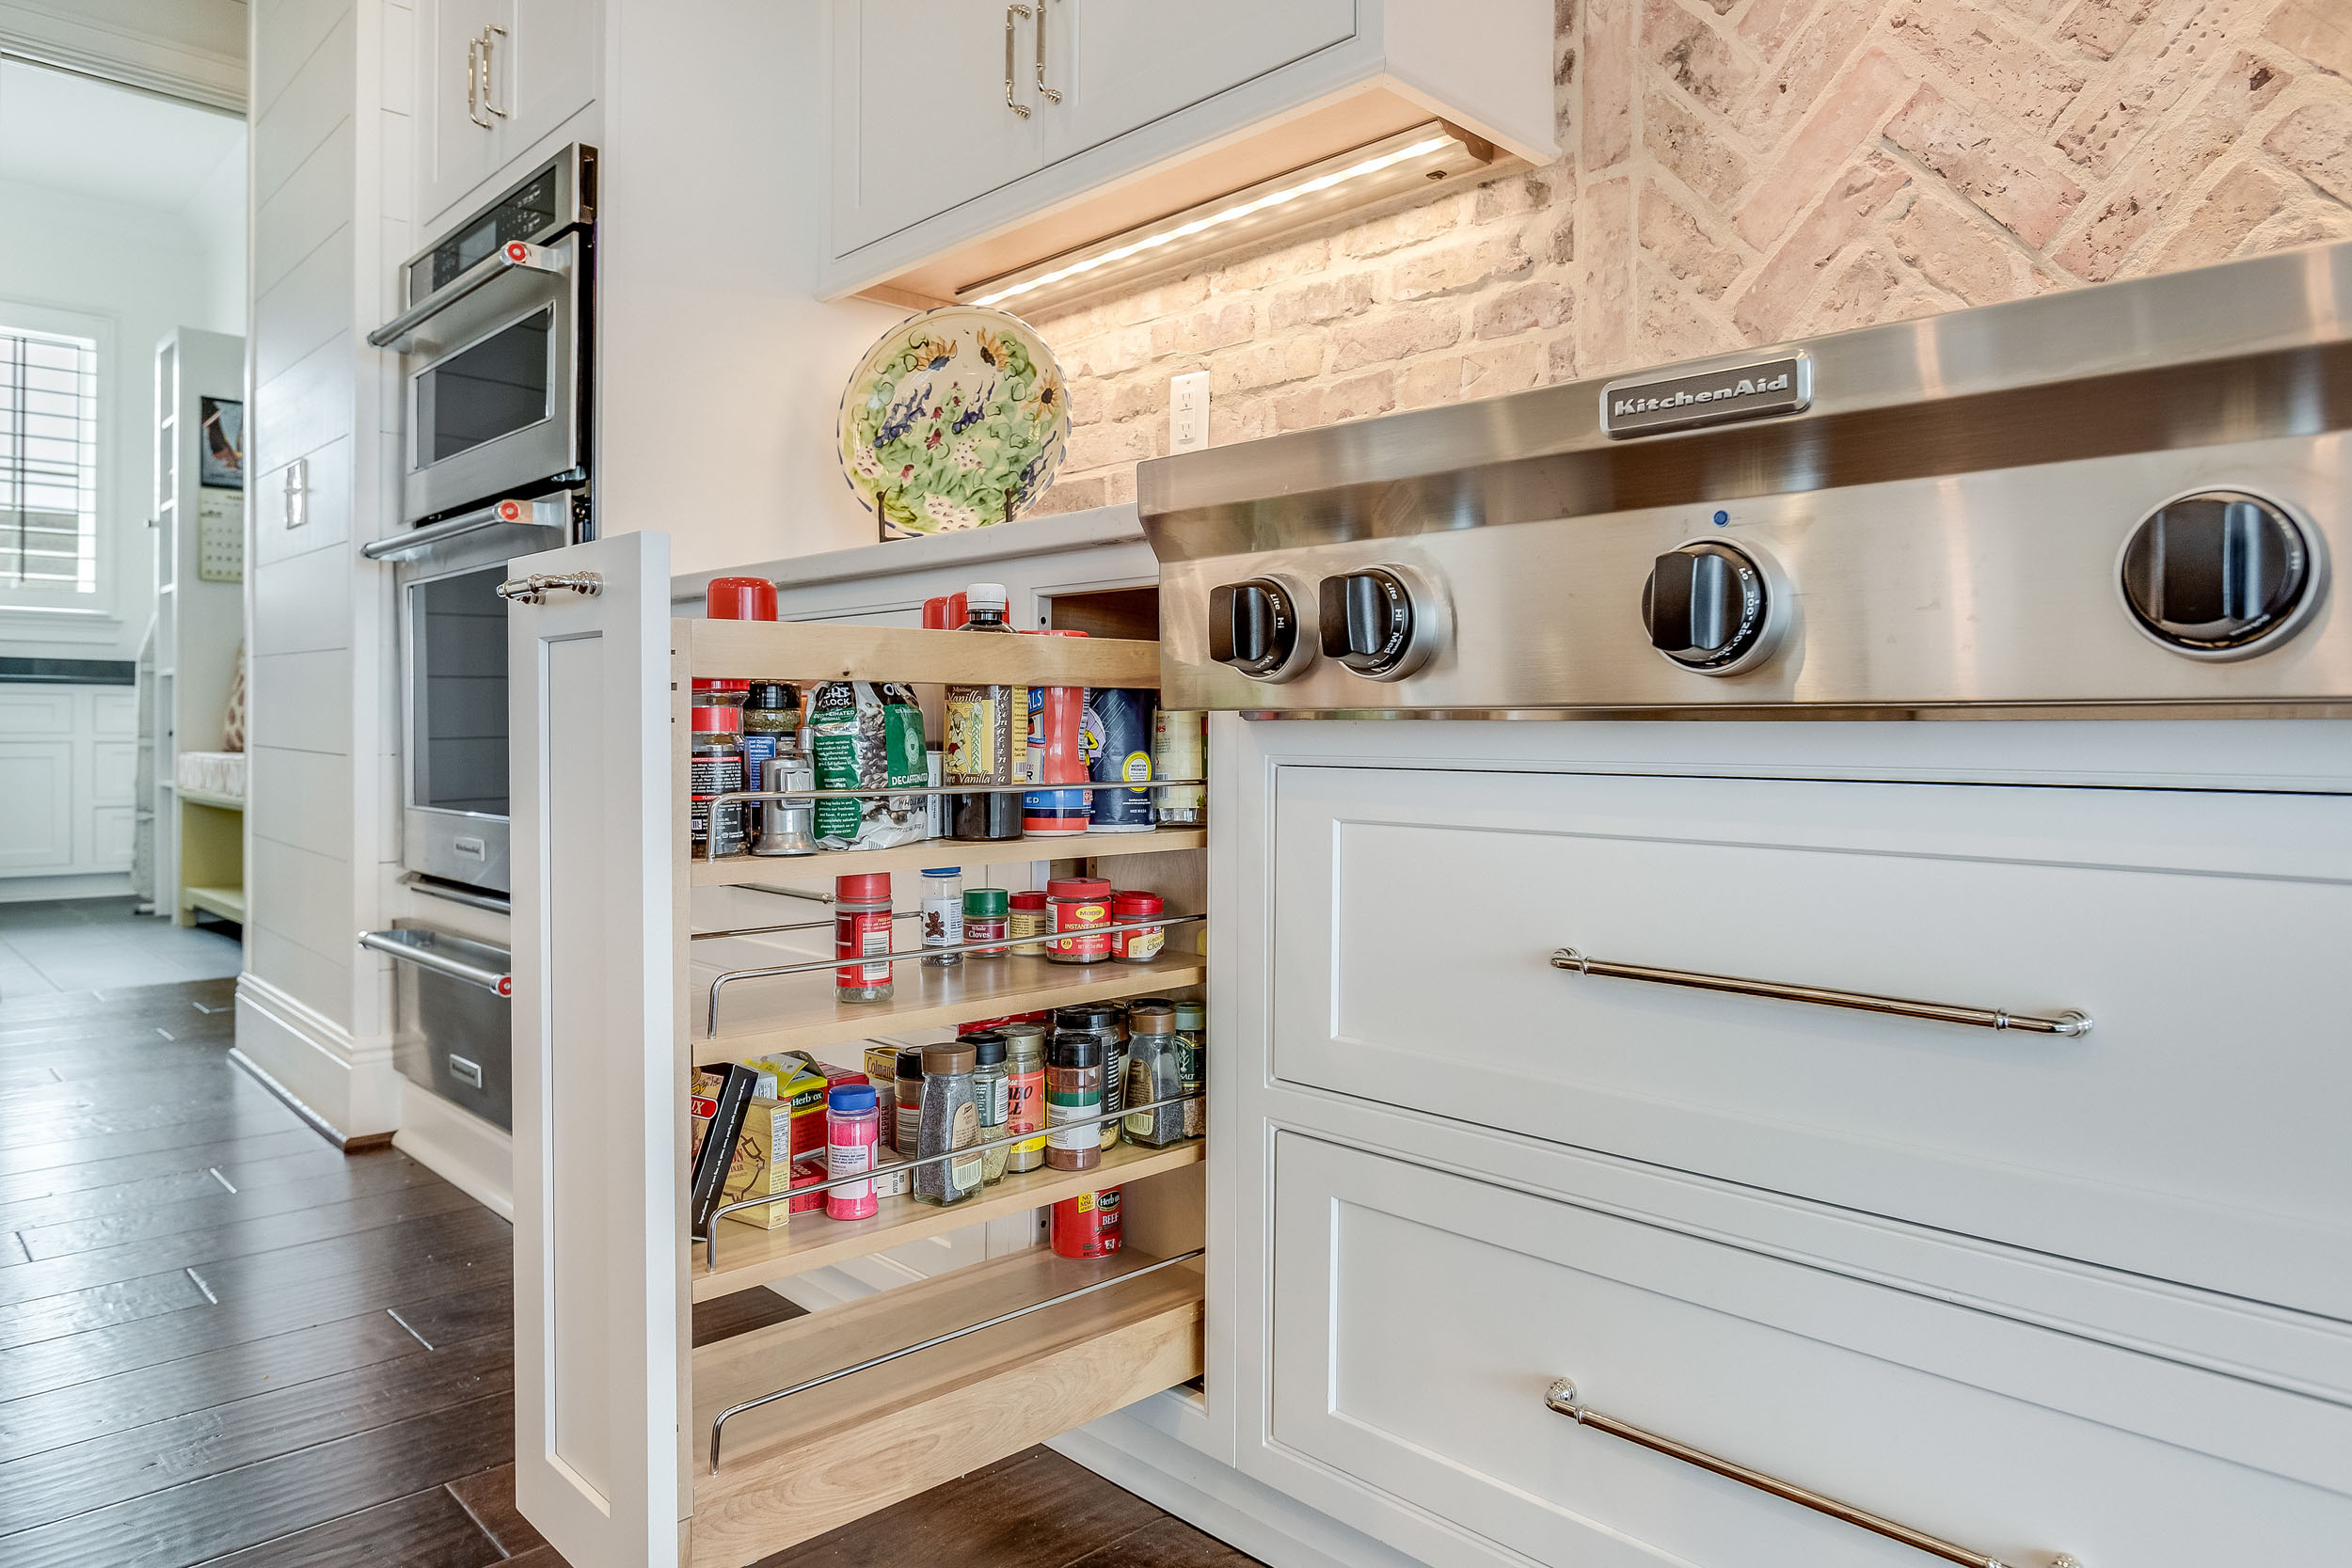 Cabinet pull out spice drawer with adjustable height storage.